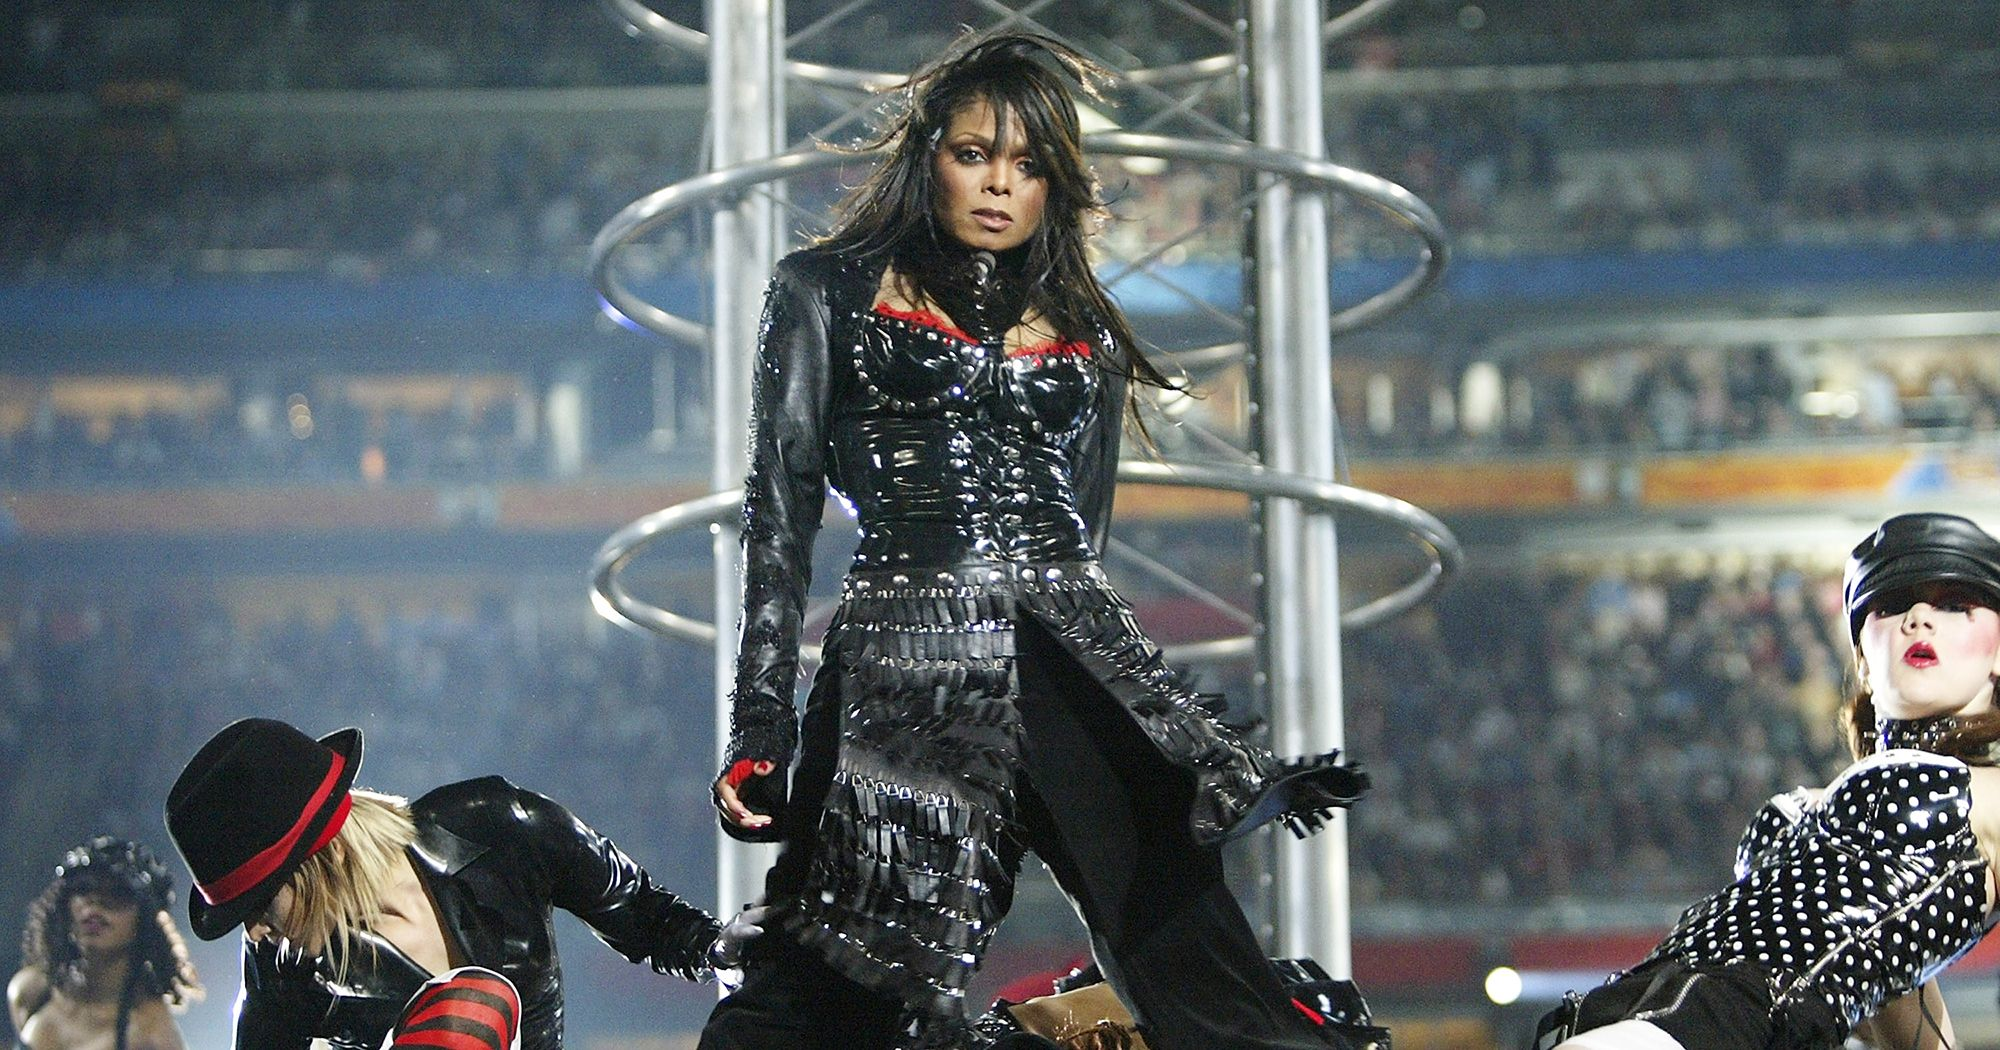 Janet Jackson at the 2004 Super Bowl